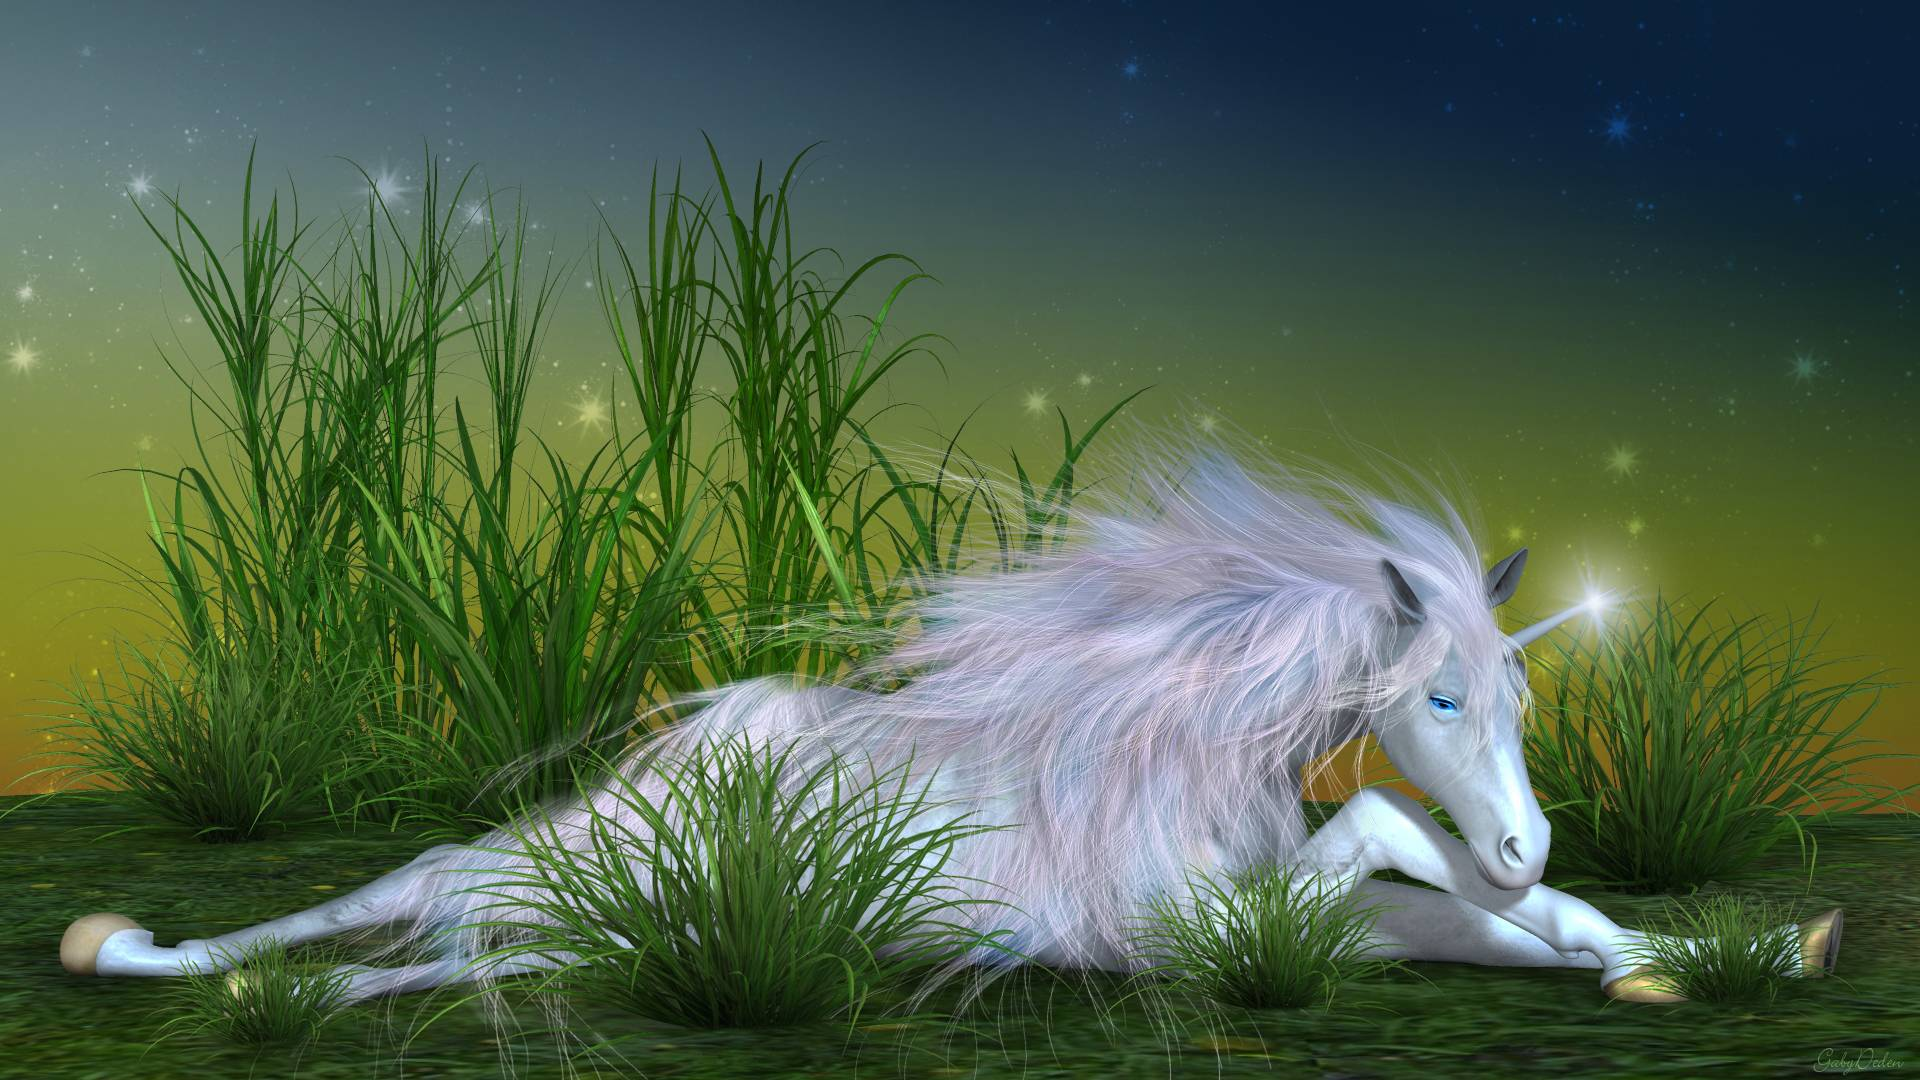 unicorn wallpapers full hd - photo #44